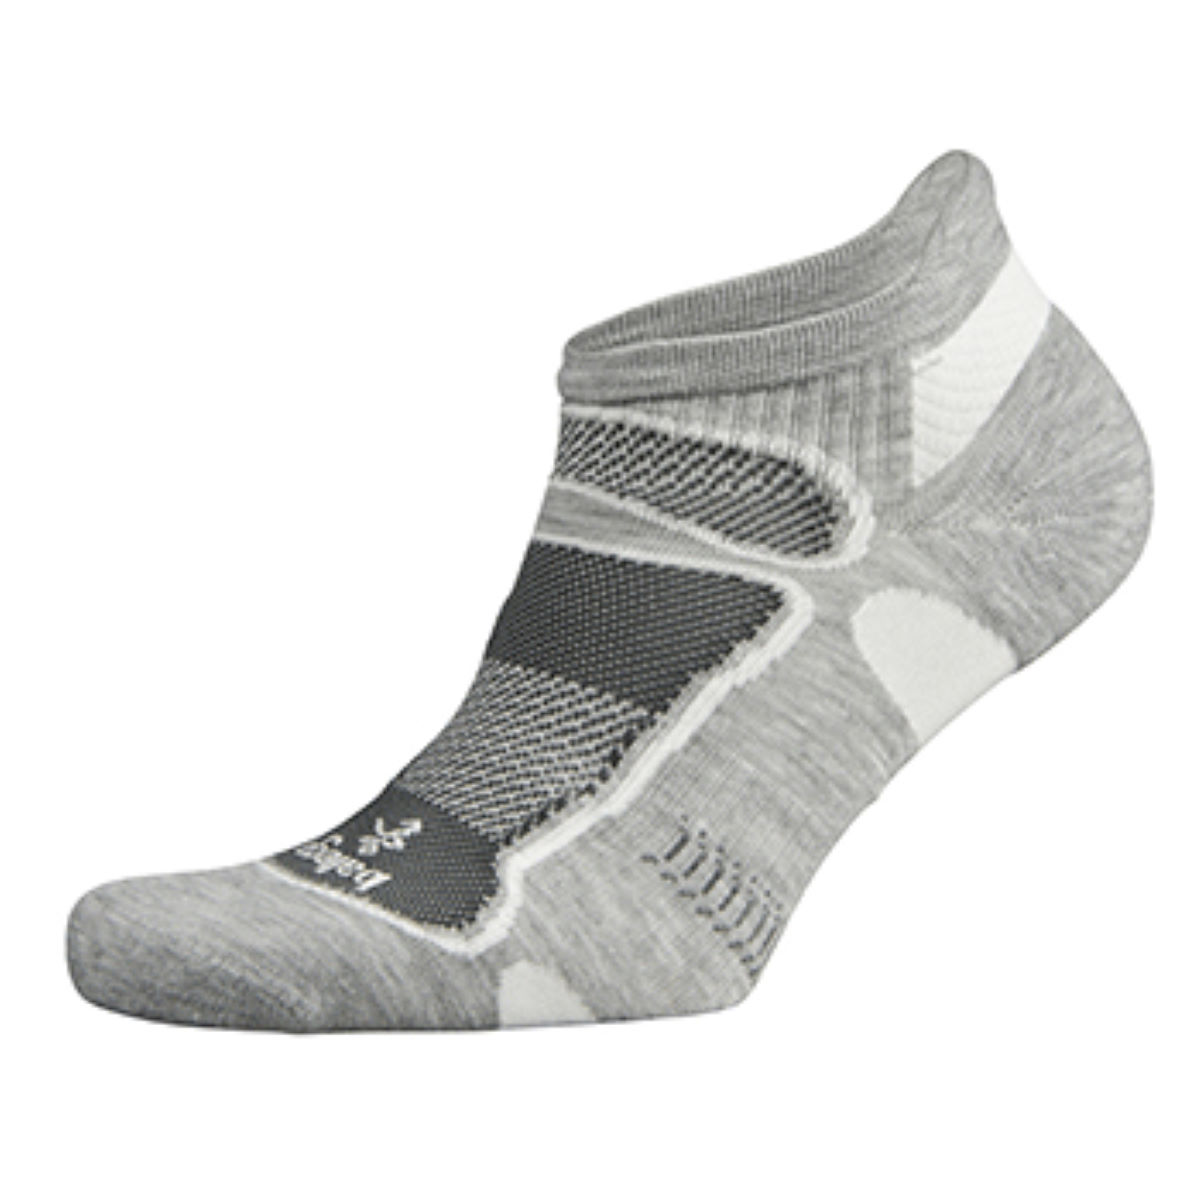 Chaussettes Balega Second Skin Ultralight No Show - M Gris/Blanc